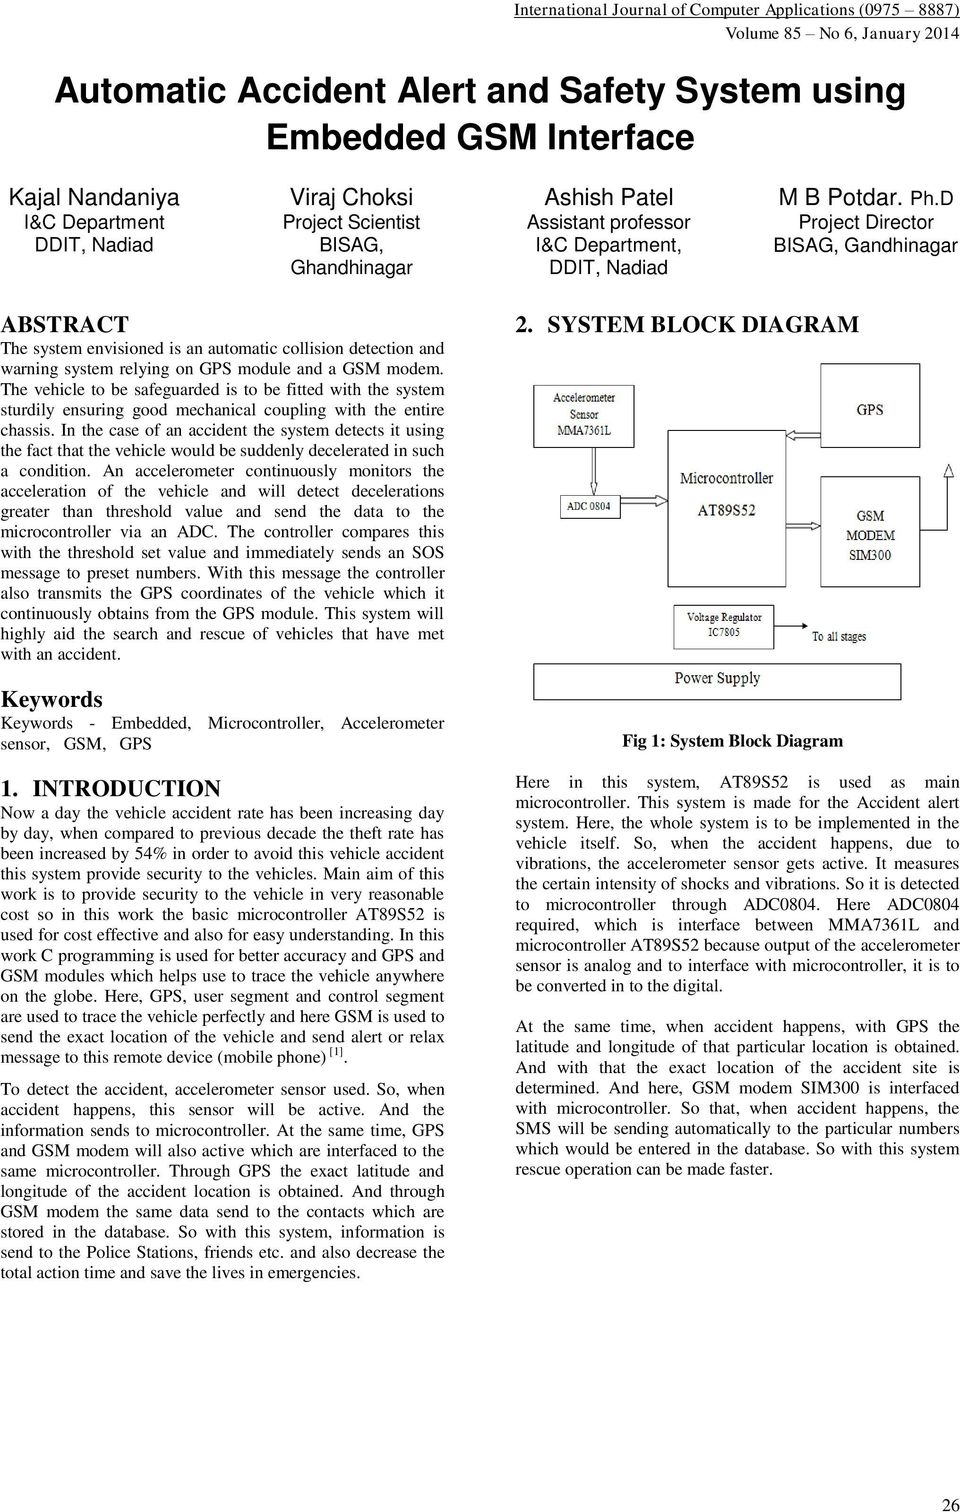 Automatic Accident Alert And Safety System Using Embedded Gsm Device Control Through Sms Sim300 At89s52 Free D Project Director Bisag Gandhinagar Abstract The Envisioned Is An Collision Detection